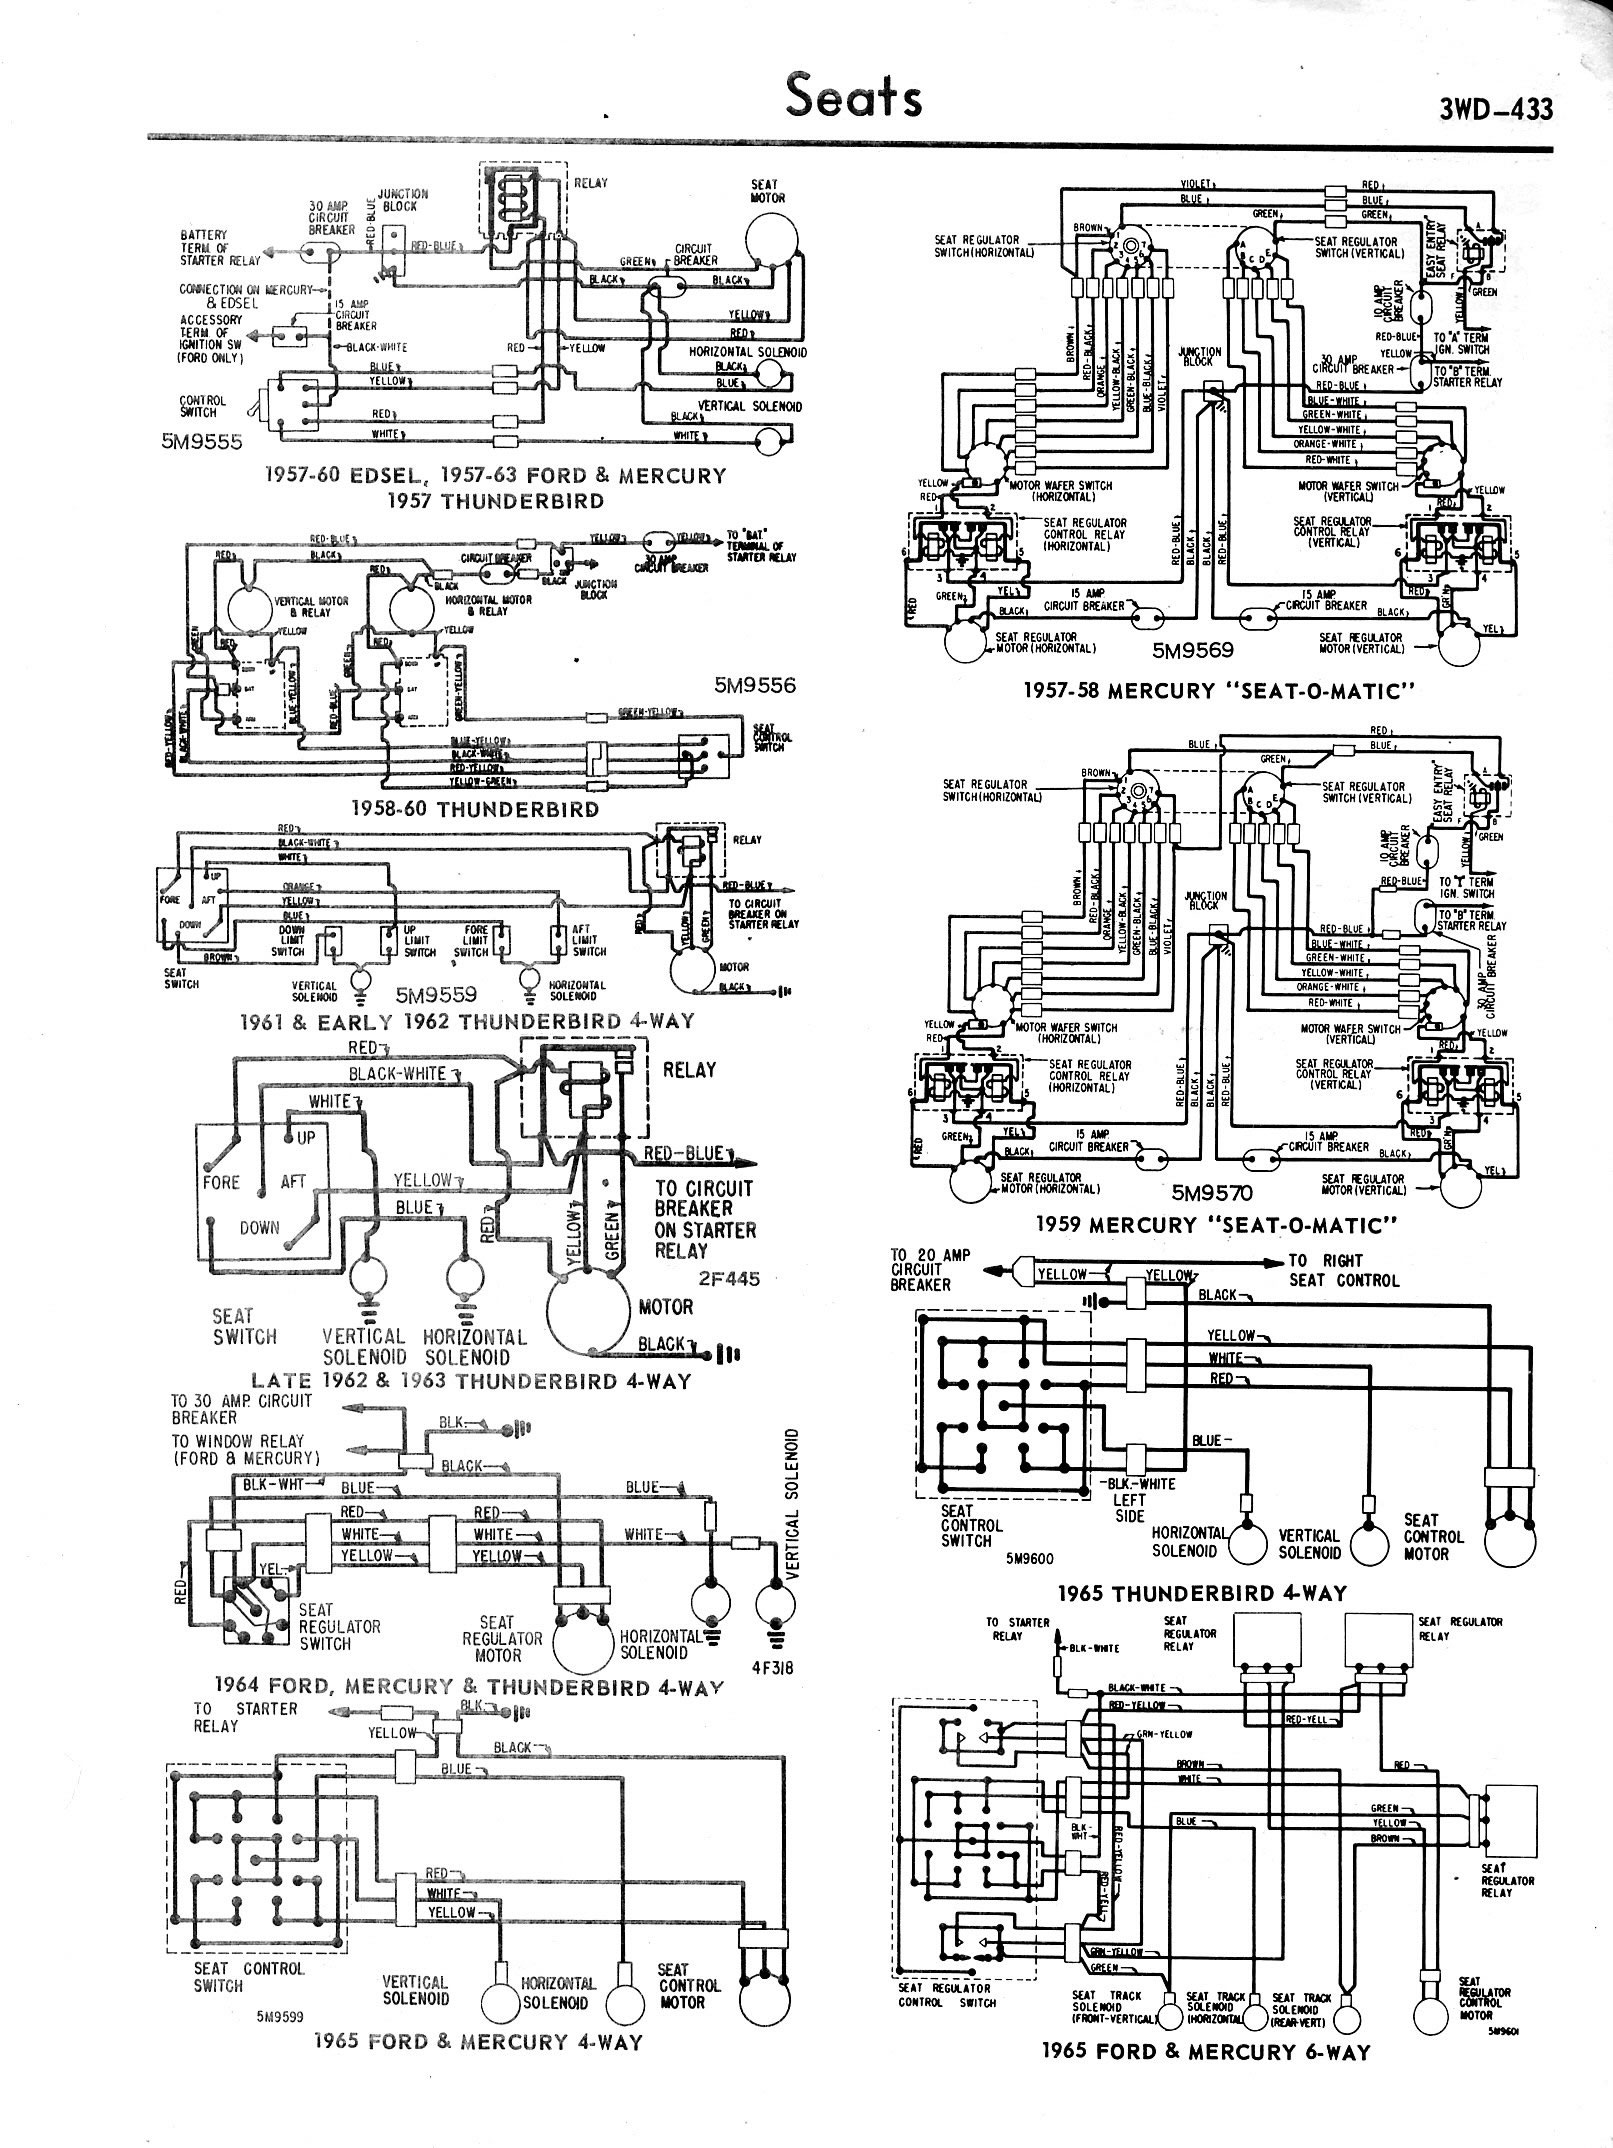 Ford Diagrams Way Lighting Circuit Diagram For Two Lights Moreover F100 Wiring 57 64 Mercury 59 Seat O Matic 60 Edsel Thunderbird 4 6